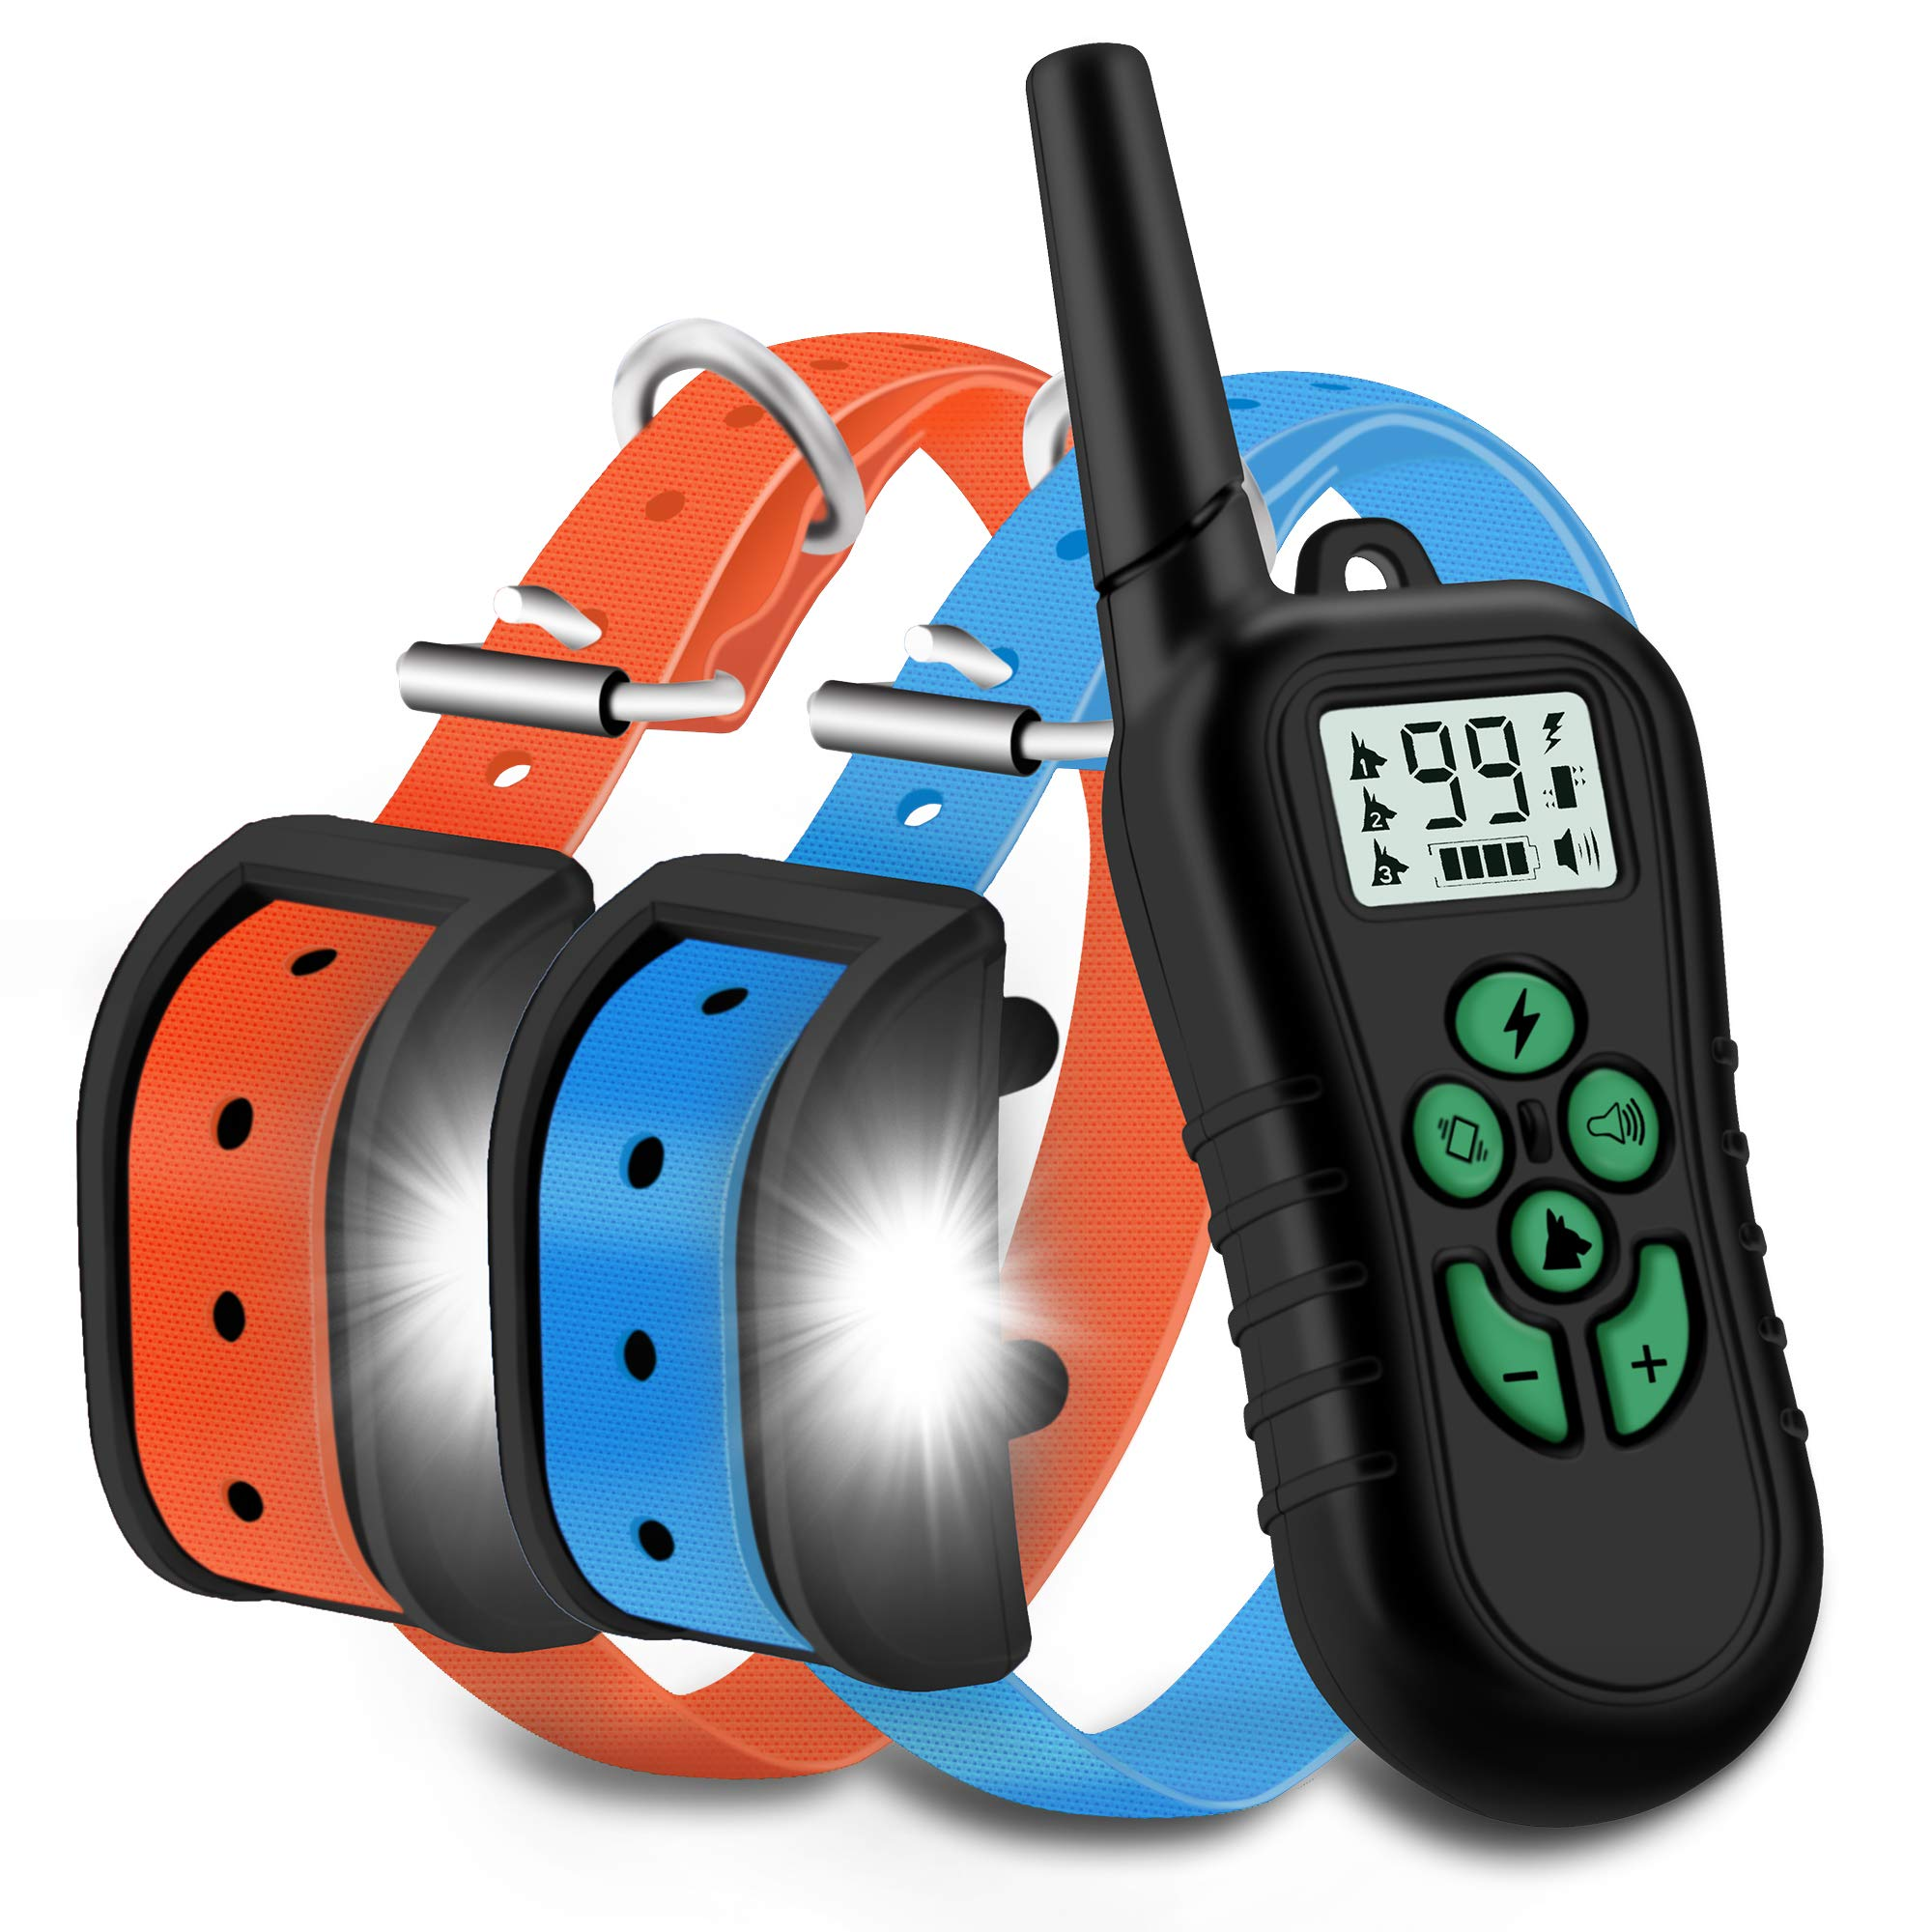 WILLBEST 2019 Upgraded Dog Training Collar Waterproof and Rechargeable Range 1650 Ft Shock Collar with Beep,Vibration,Shock,Tracking Light Modes by WILLBEST